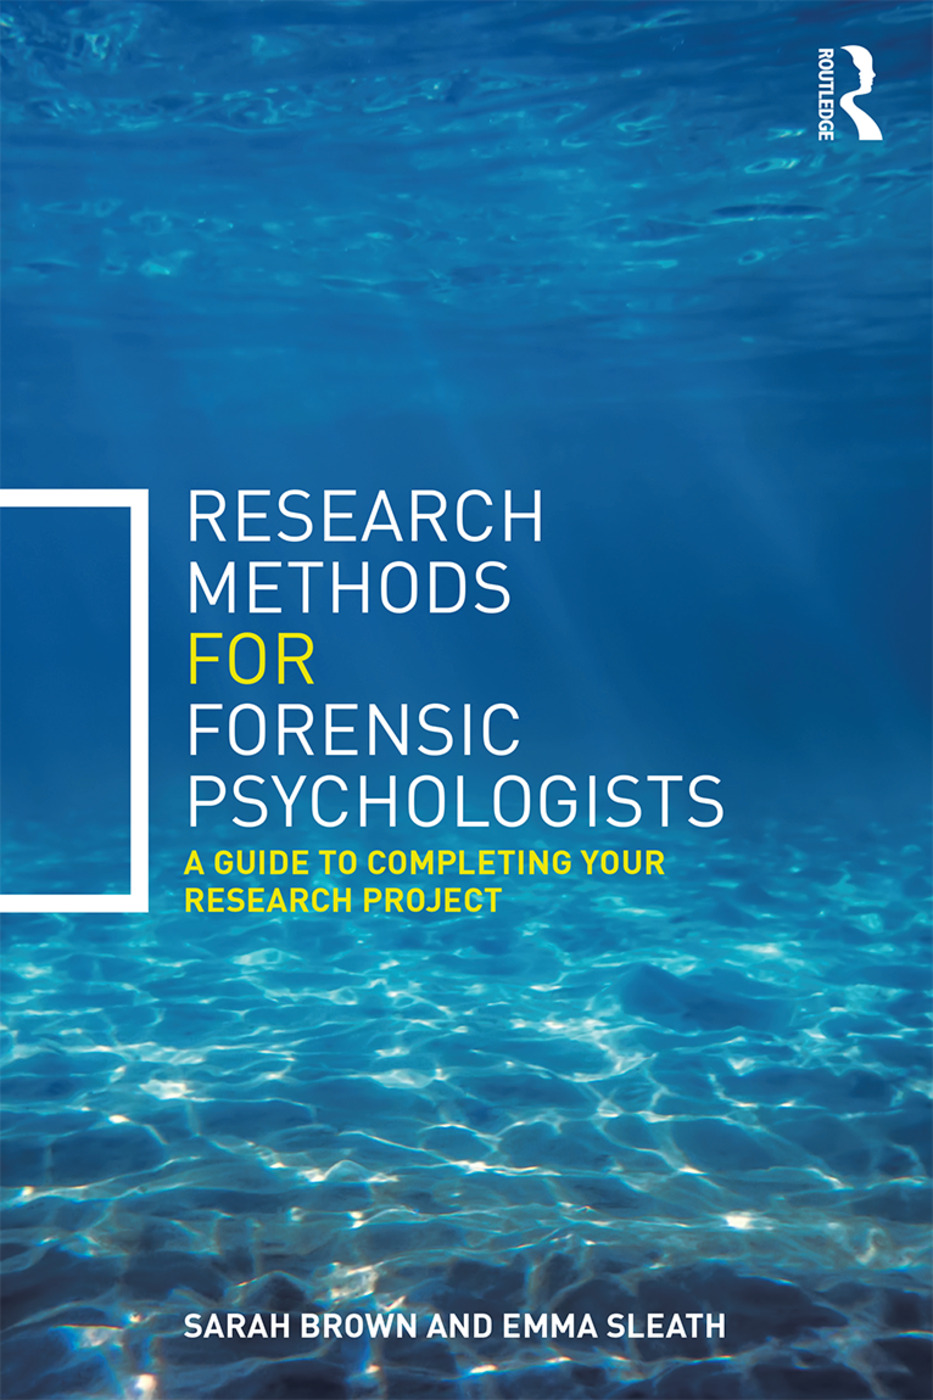 Research Methods for Forensic Psychologists: A guide to completing your research project book cover